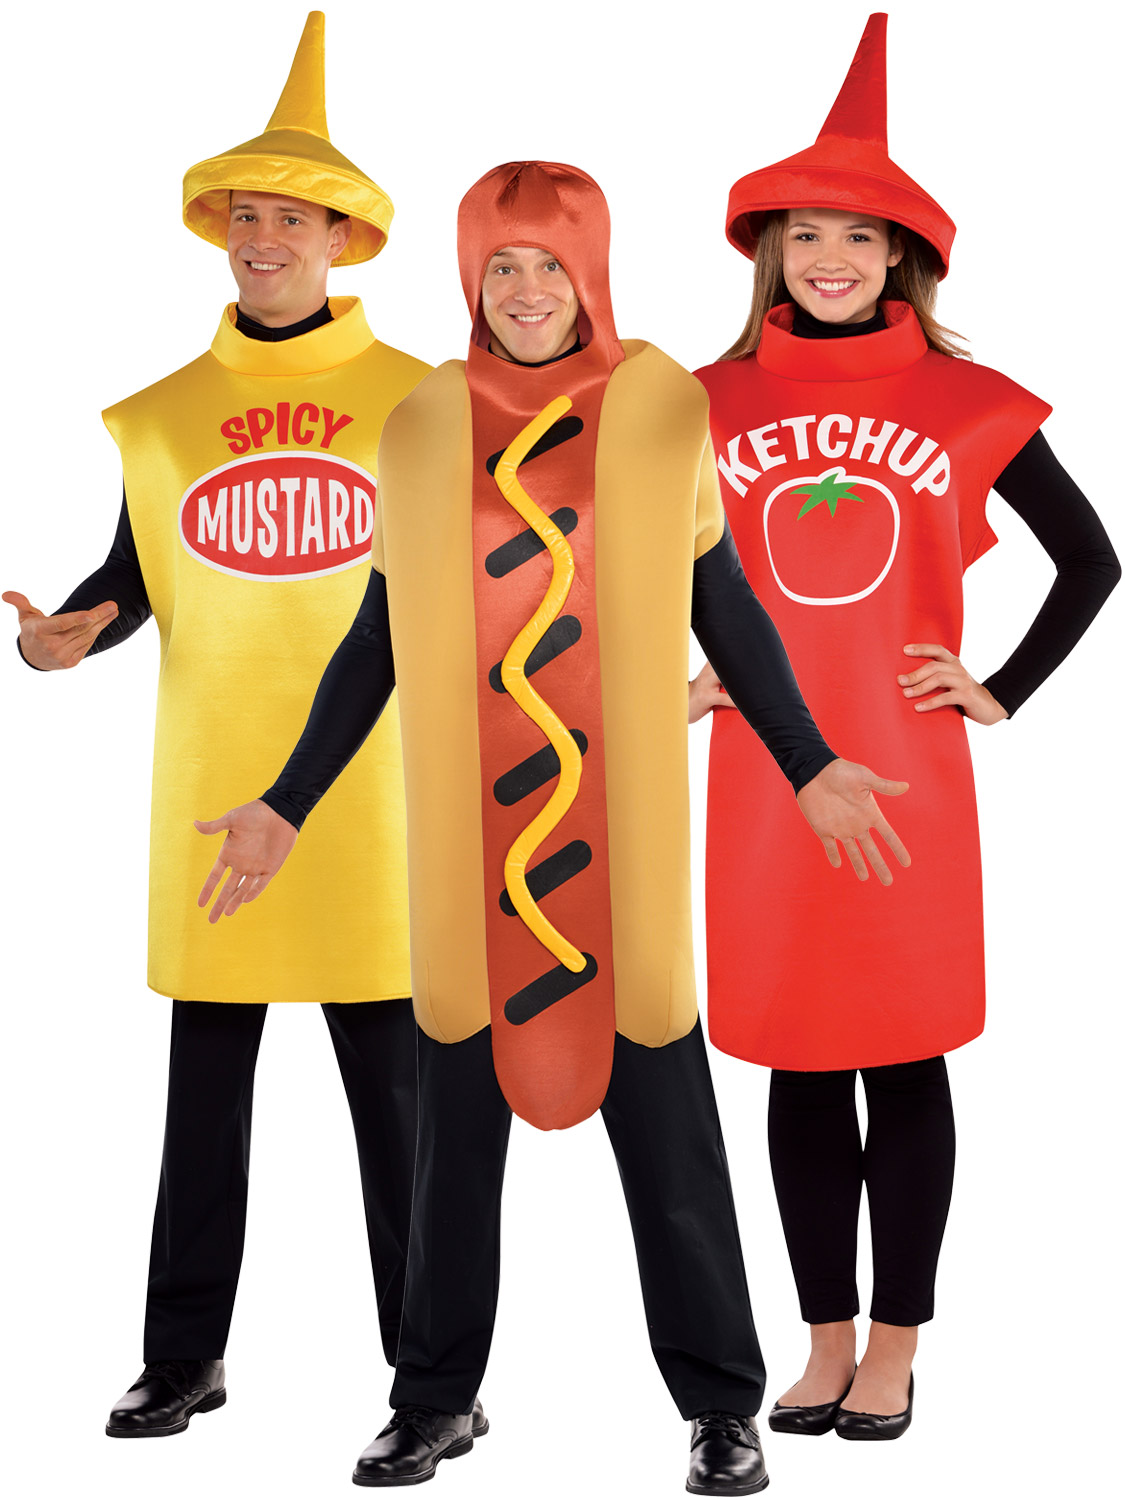 Adults American Food Costume Hot Dog Sauce Fancy Dress Mens Ladies Outfit. Image 2  sc 1 st  eBay & Adults American Food Costume Hot Dog Sauce Fancy Dress Mens Ladies ...